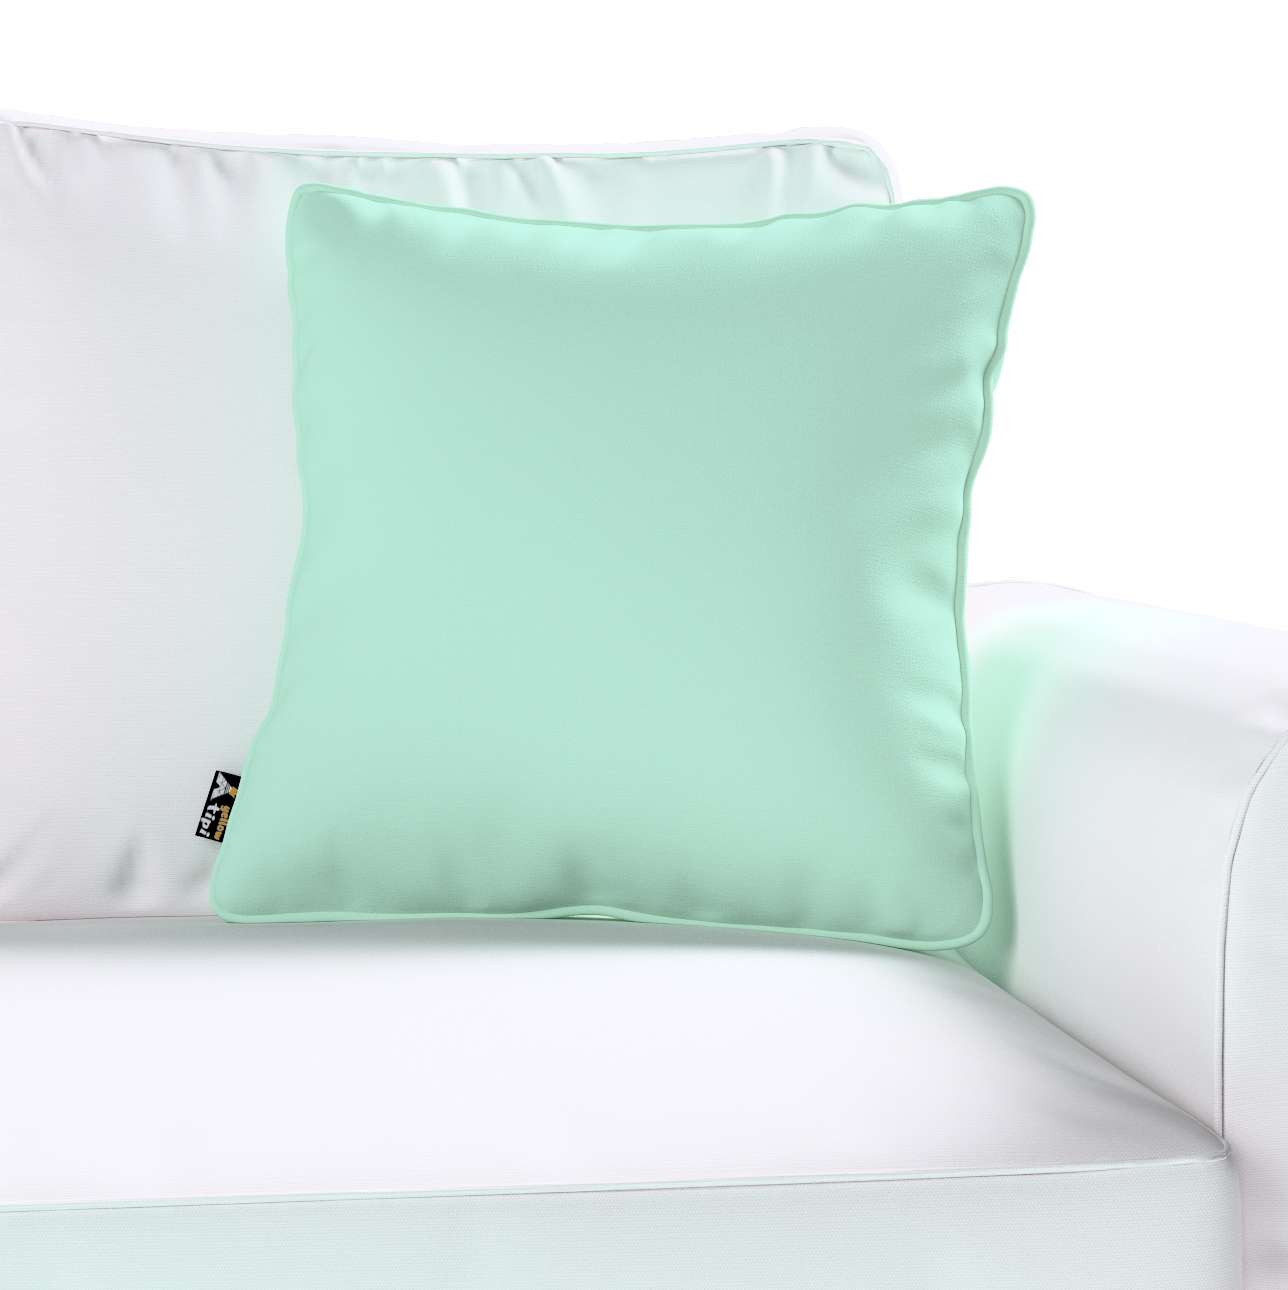 Lola piped cushion cover in collection Happiness, fabric: 133-37